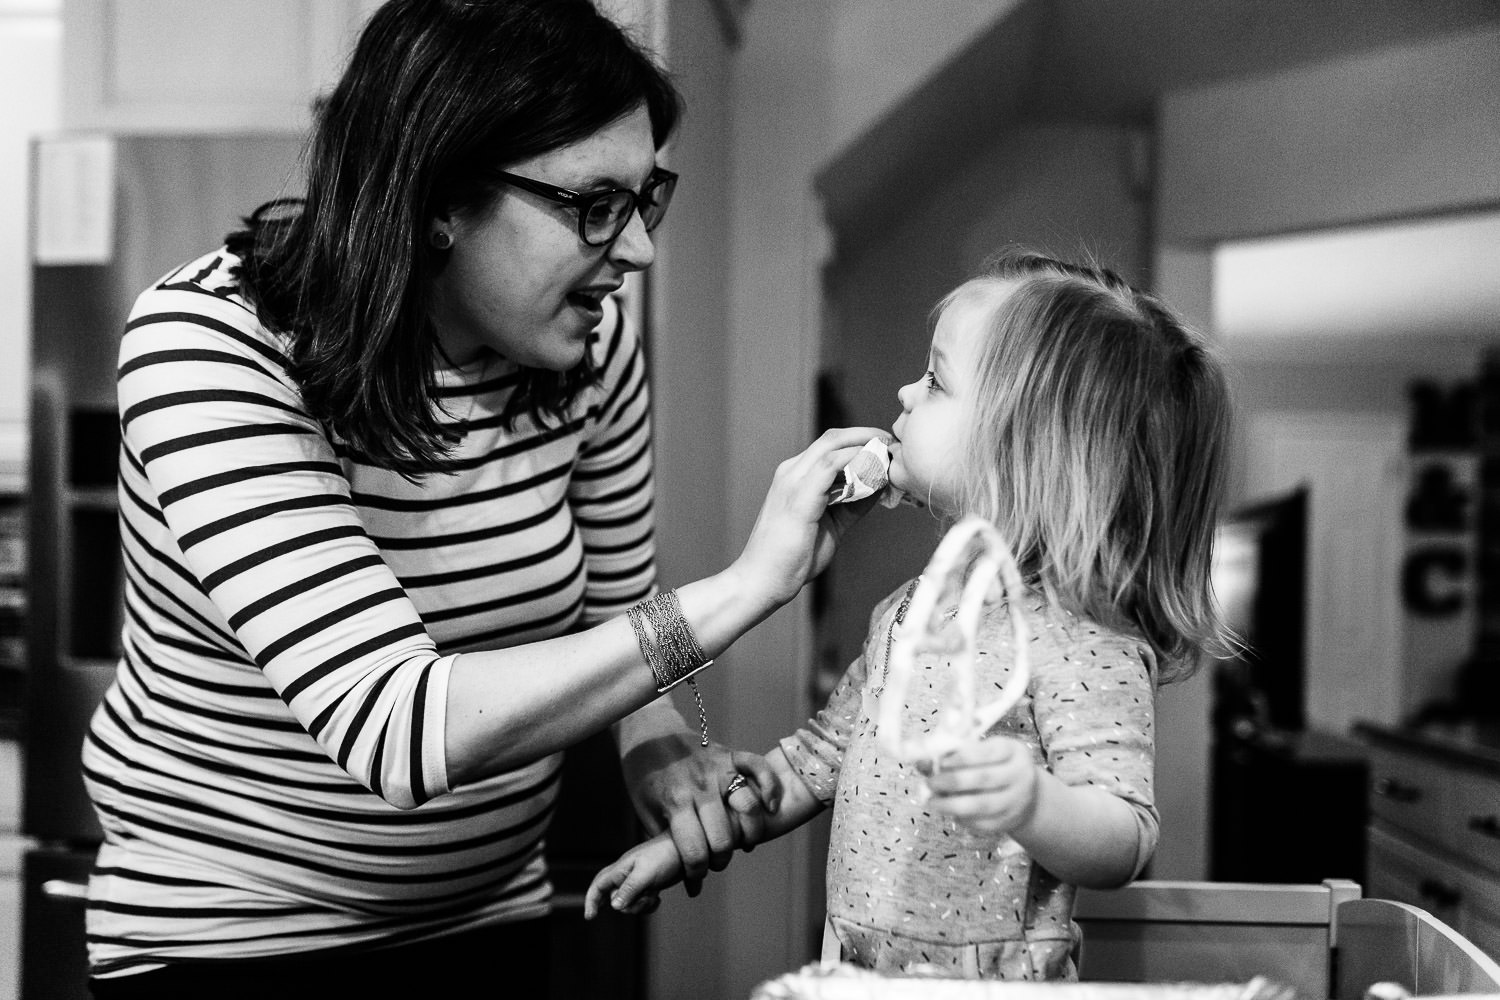 mom wiping cookie dough off of face of little girl